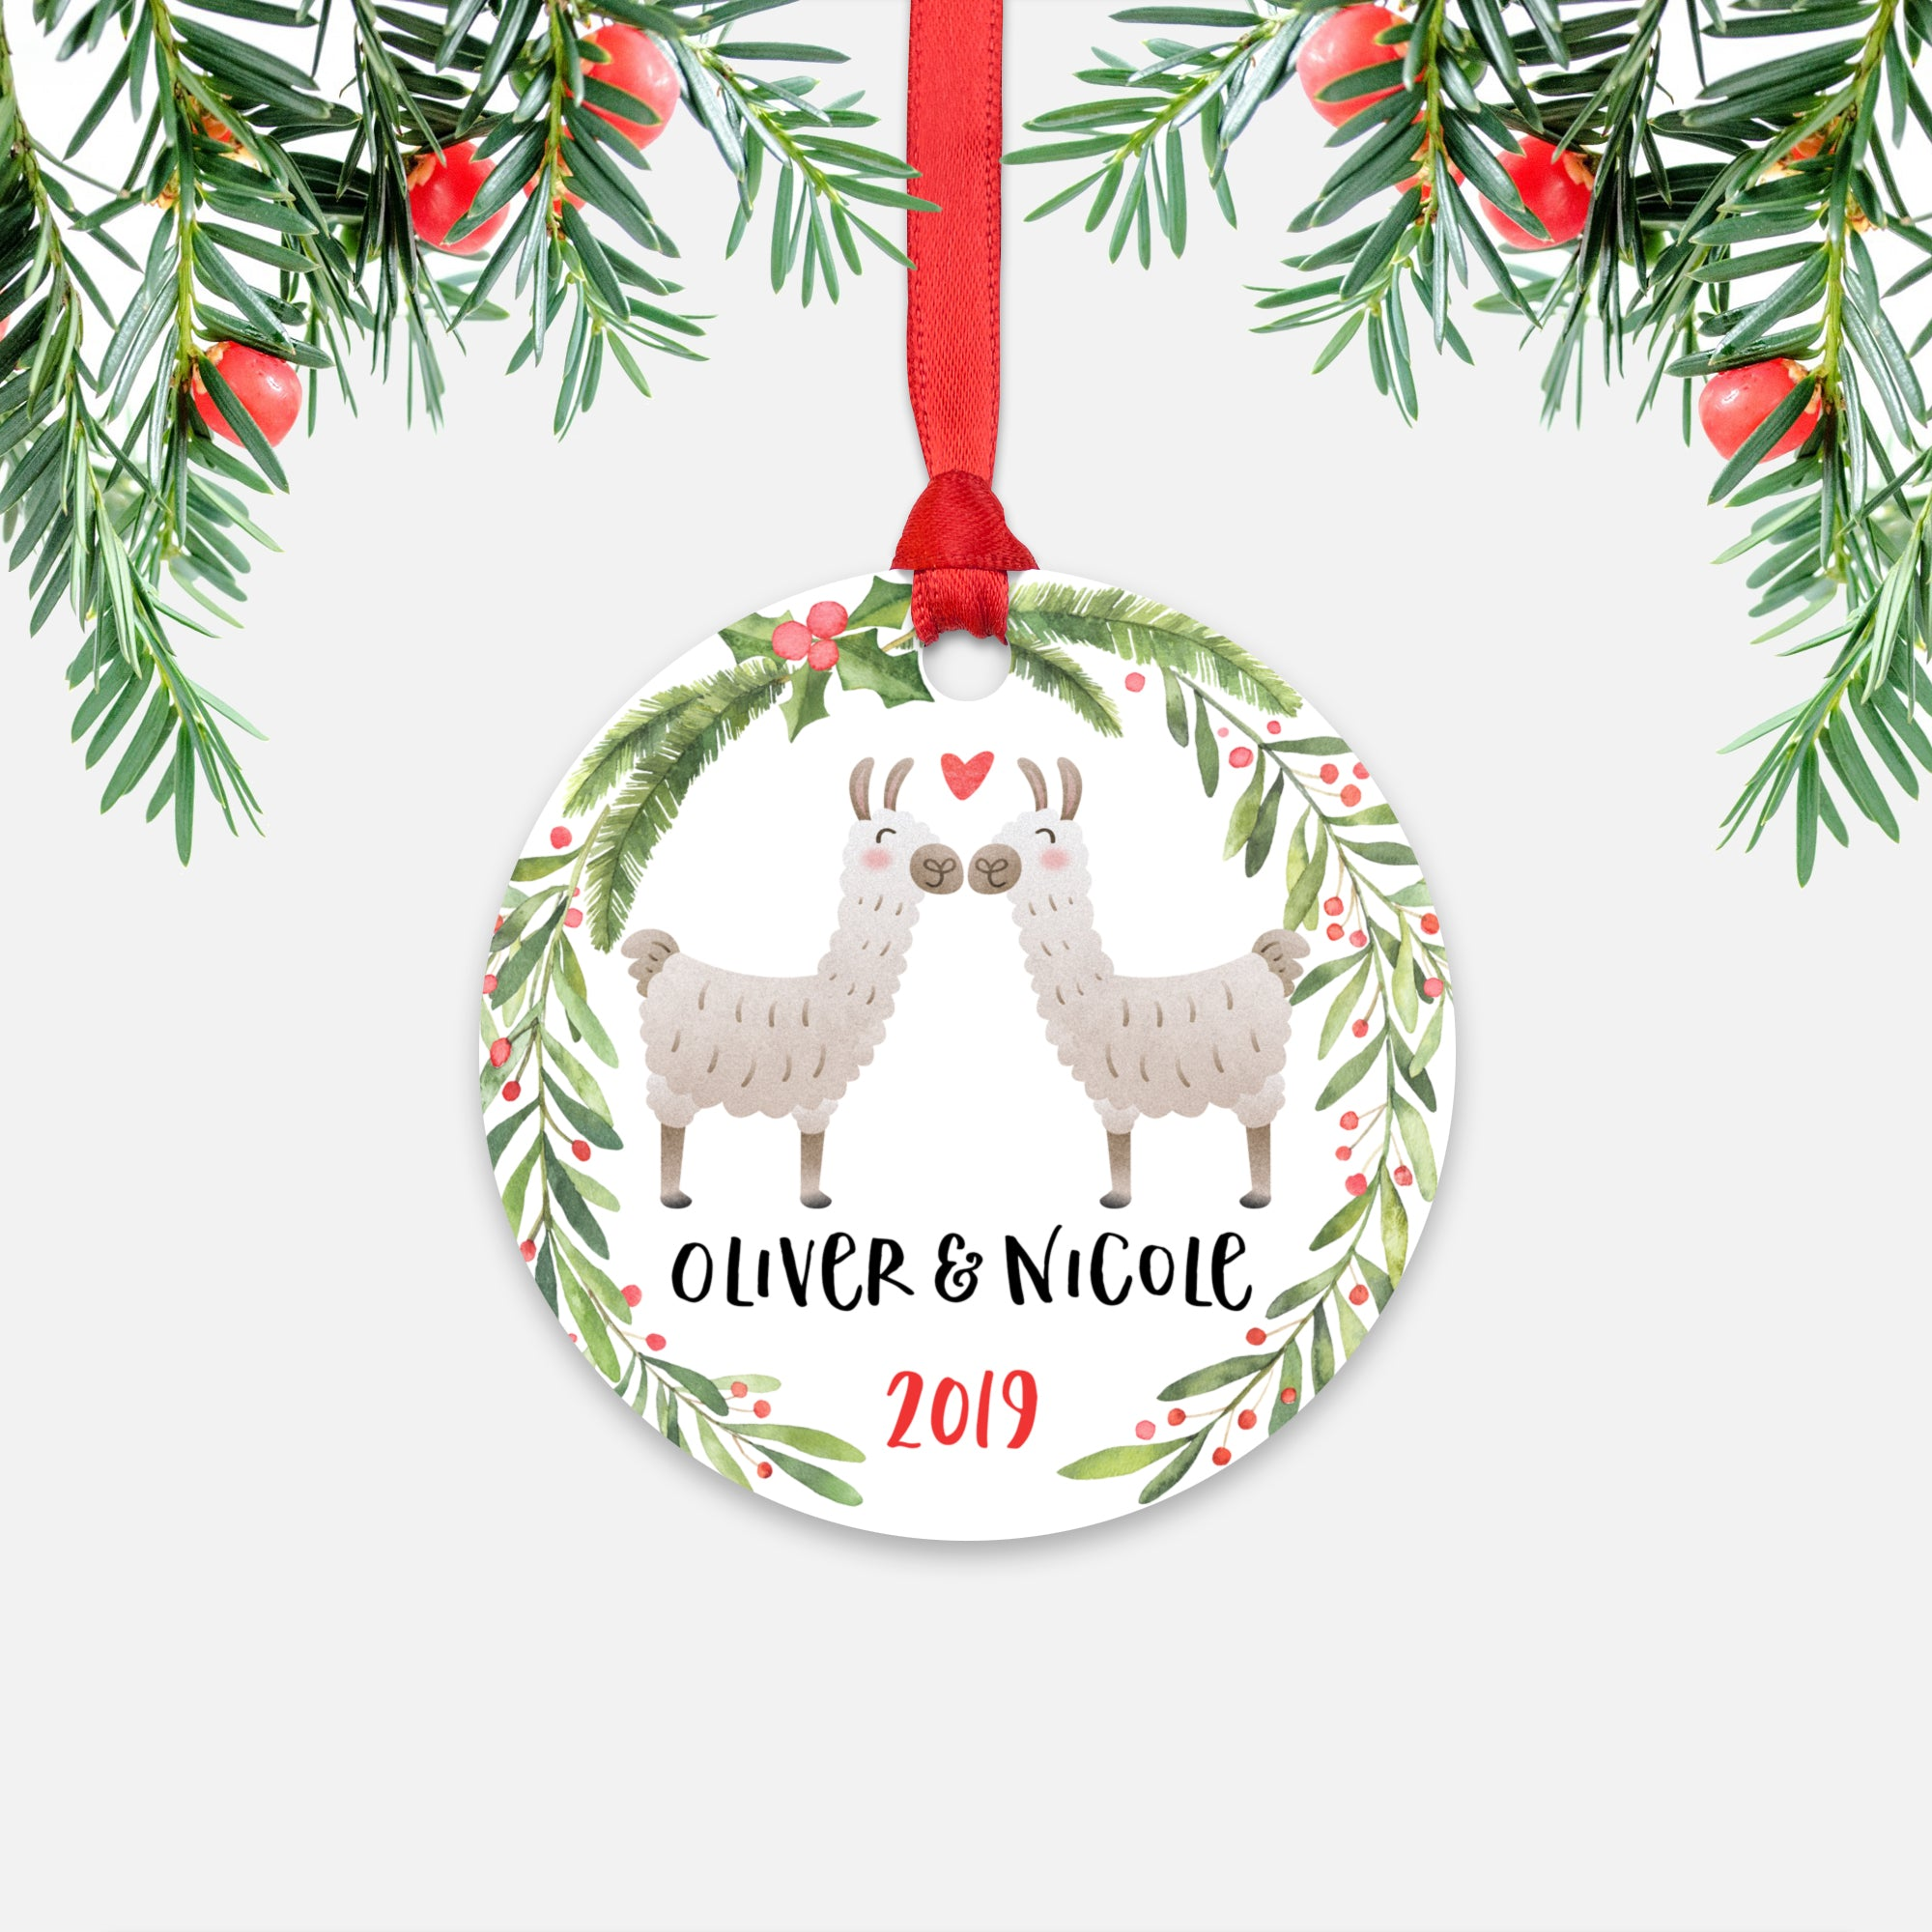 Llama Alpaca Couple Personalized Christmas Ornament - Holidays Custom Gift for Animal Lover Wedding Engagement Newlyweds Wife Husband Boyfriend Girlfriend - Round Aluminum - Red Ribbon Hanging in Tree - by Happy Cat Prints